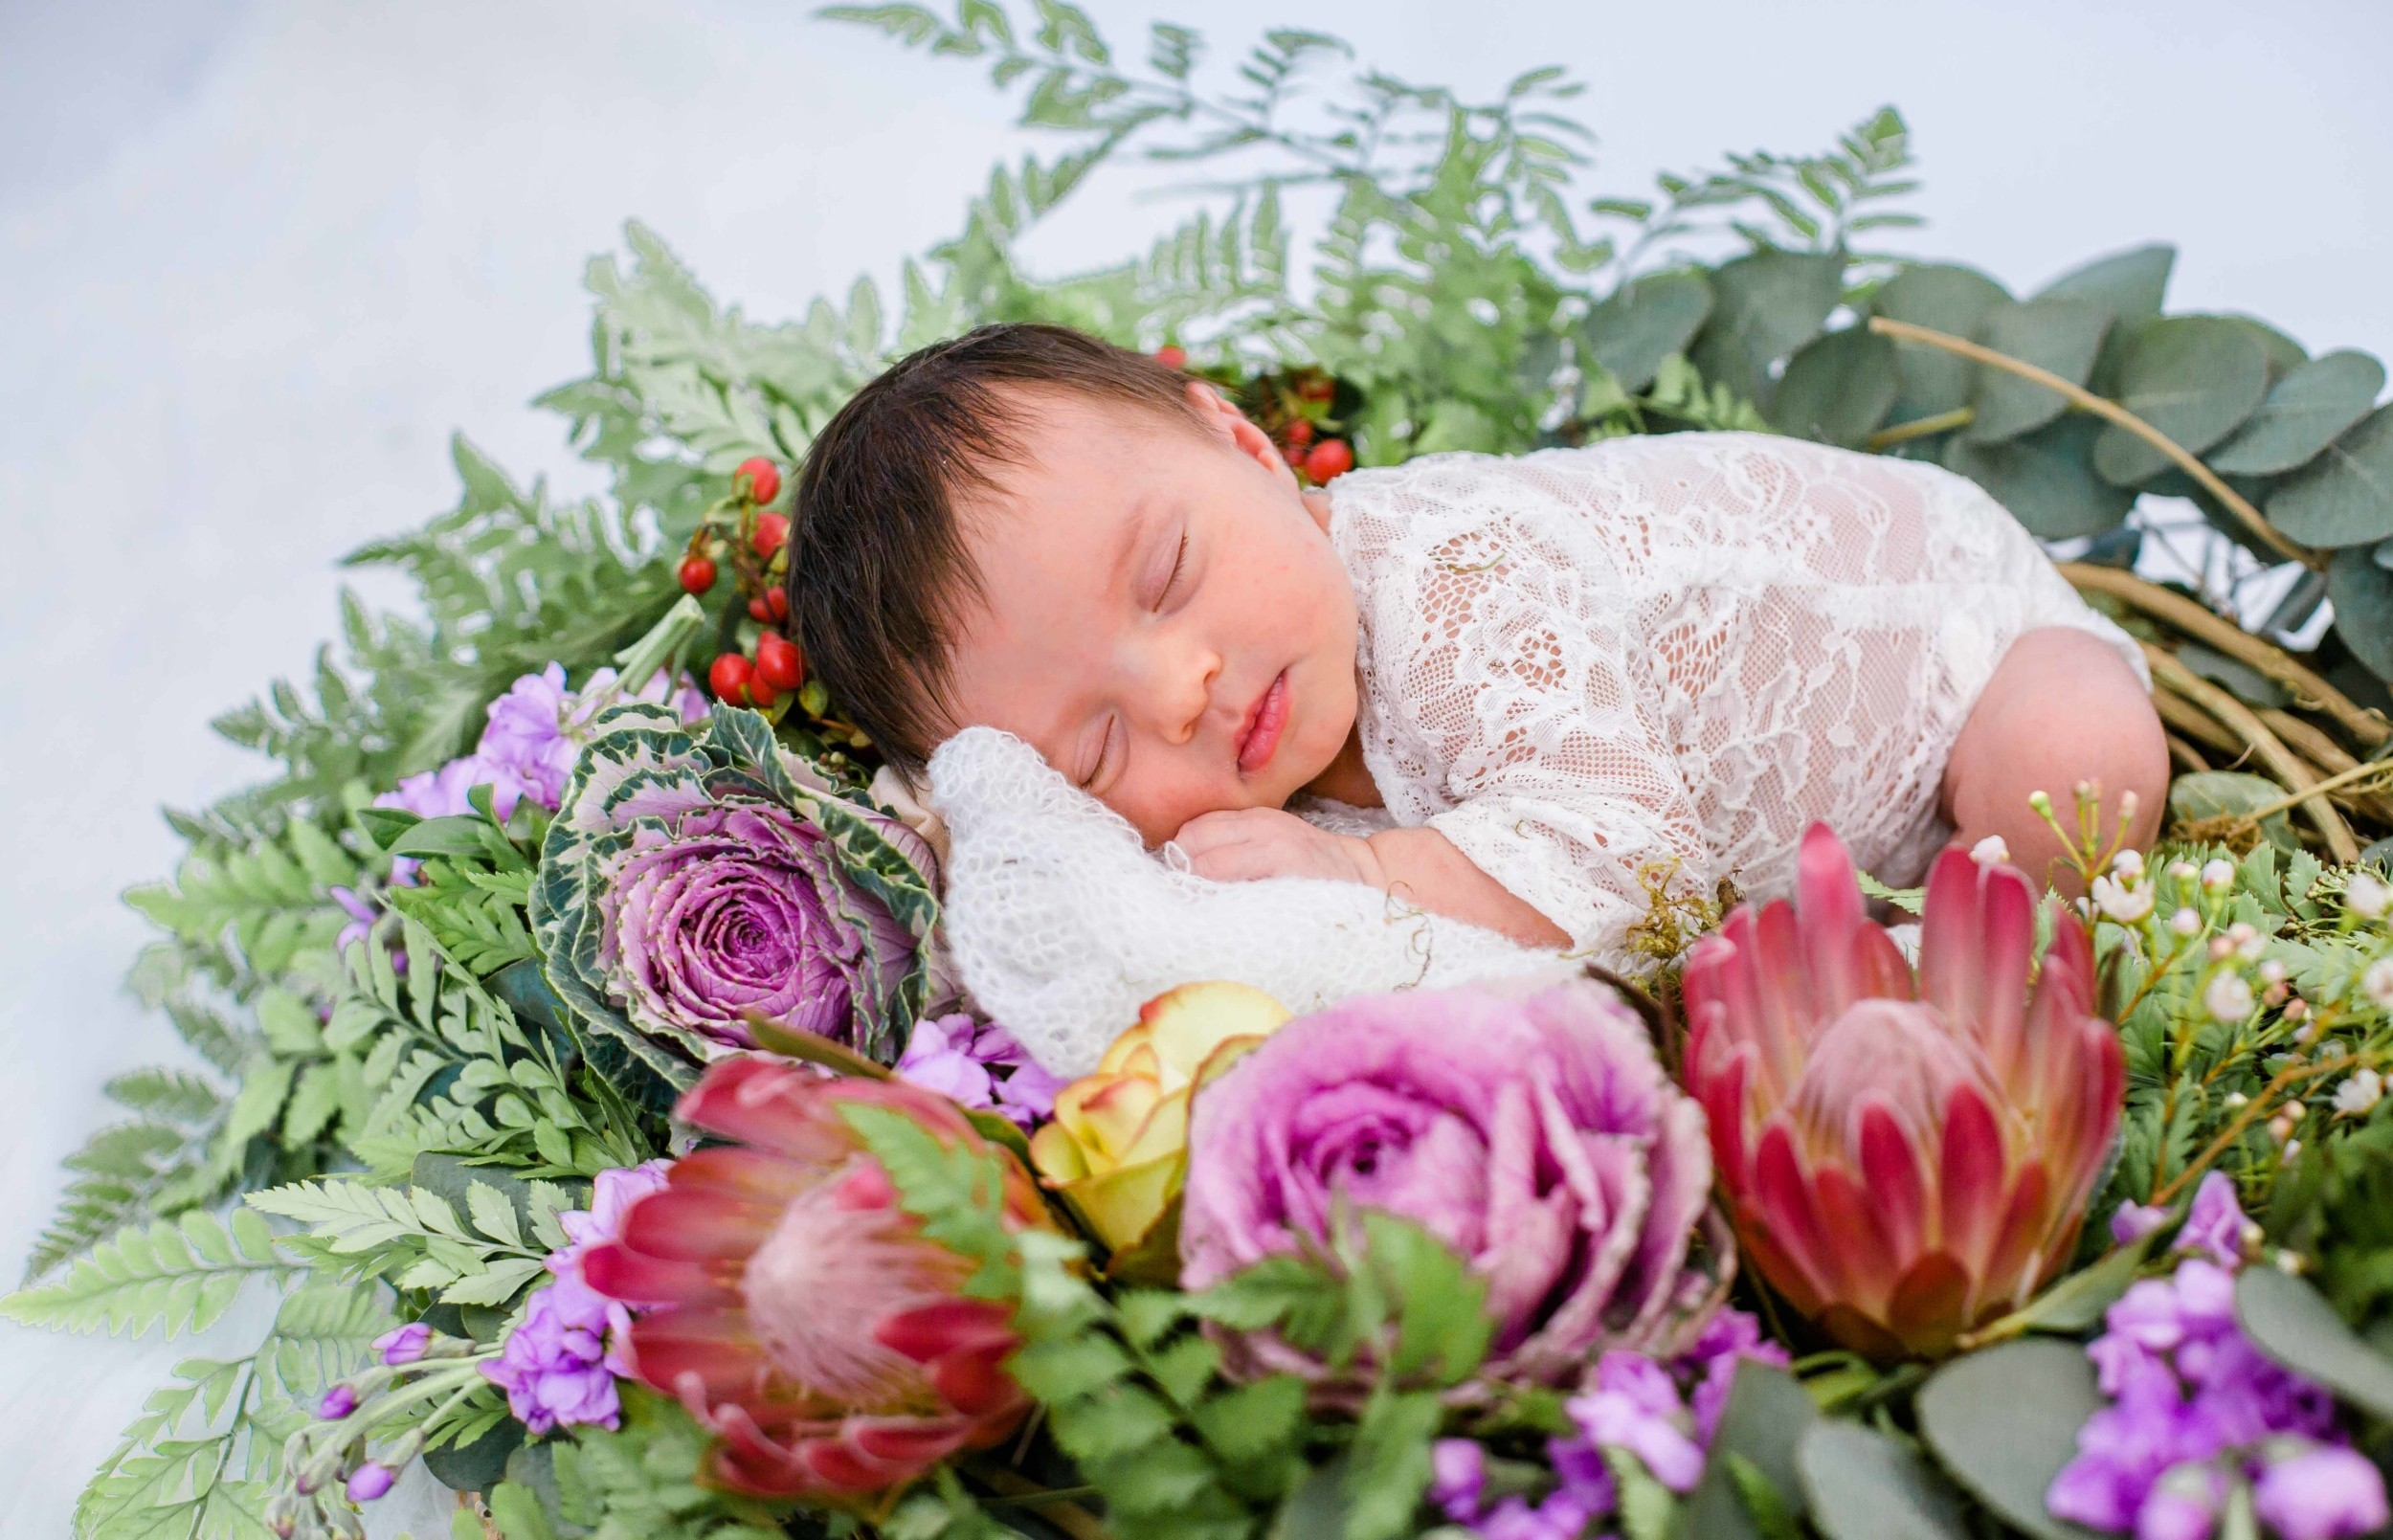 Magical floral Newborn Photoshoot by Velani Venter